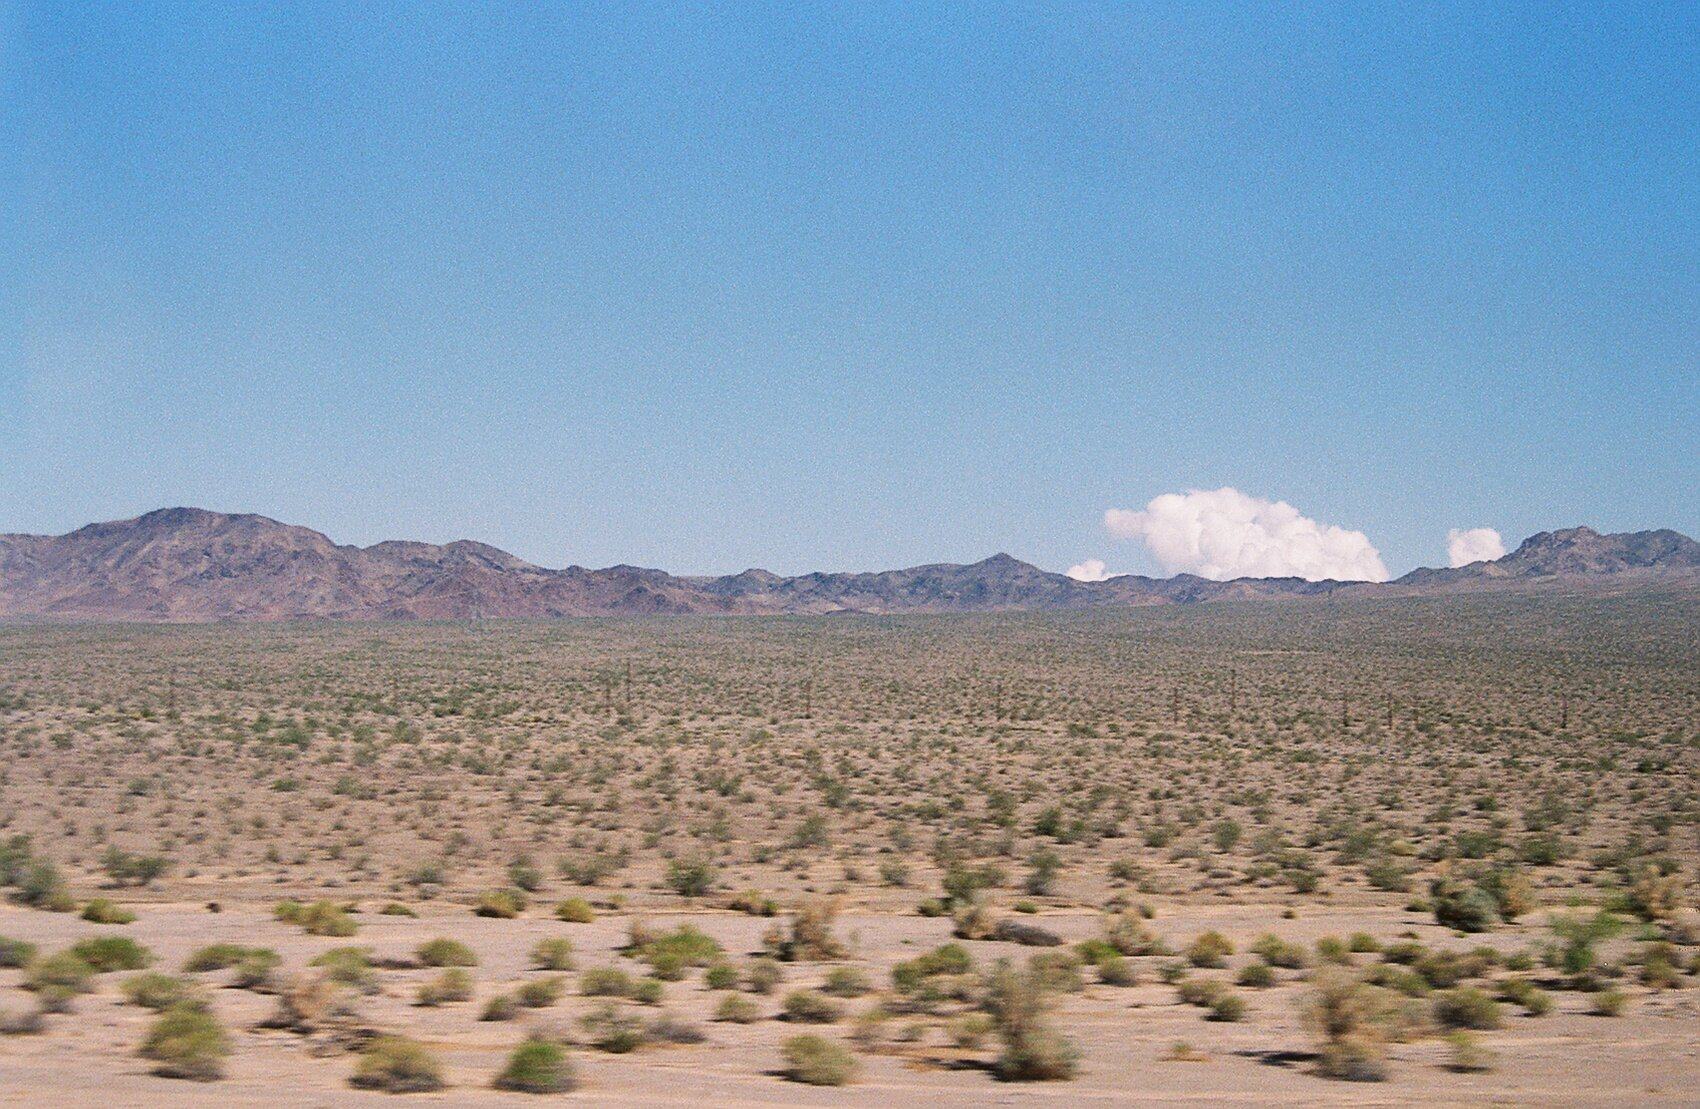 Desert view, Greyhound bus en route to San Diego from Las Vegas (2019)